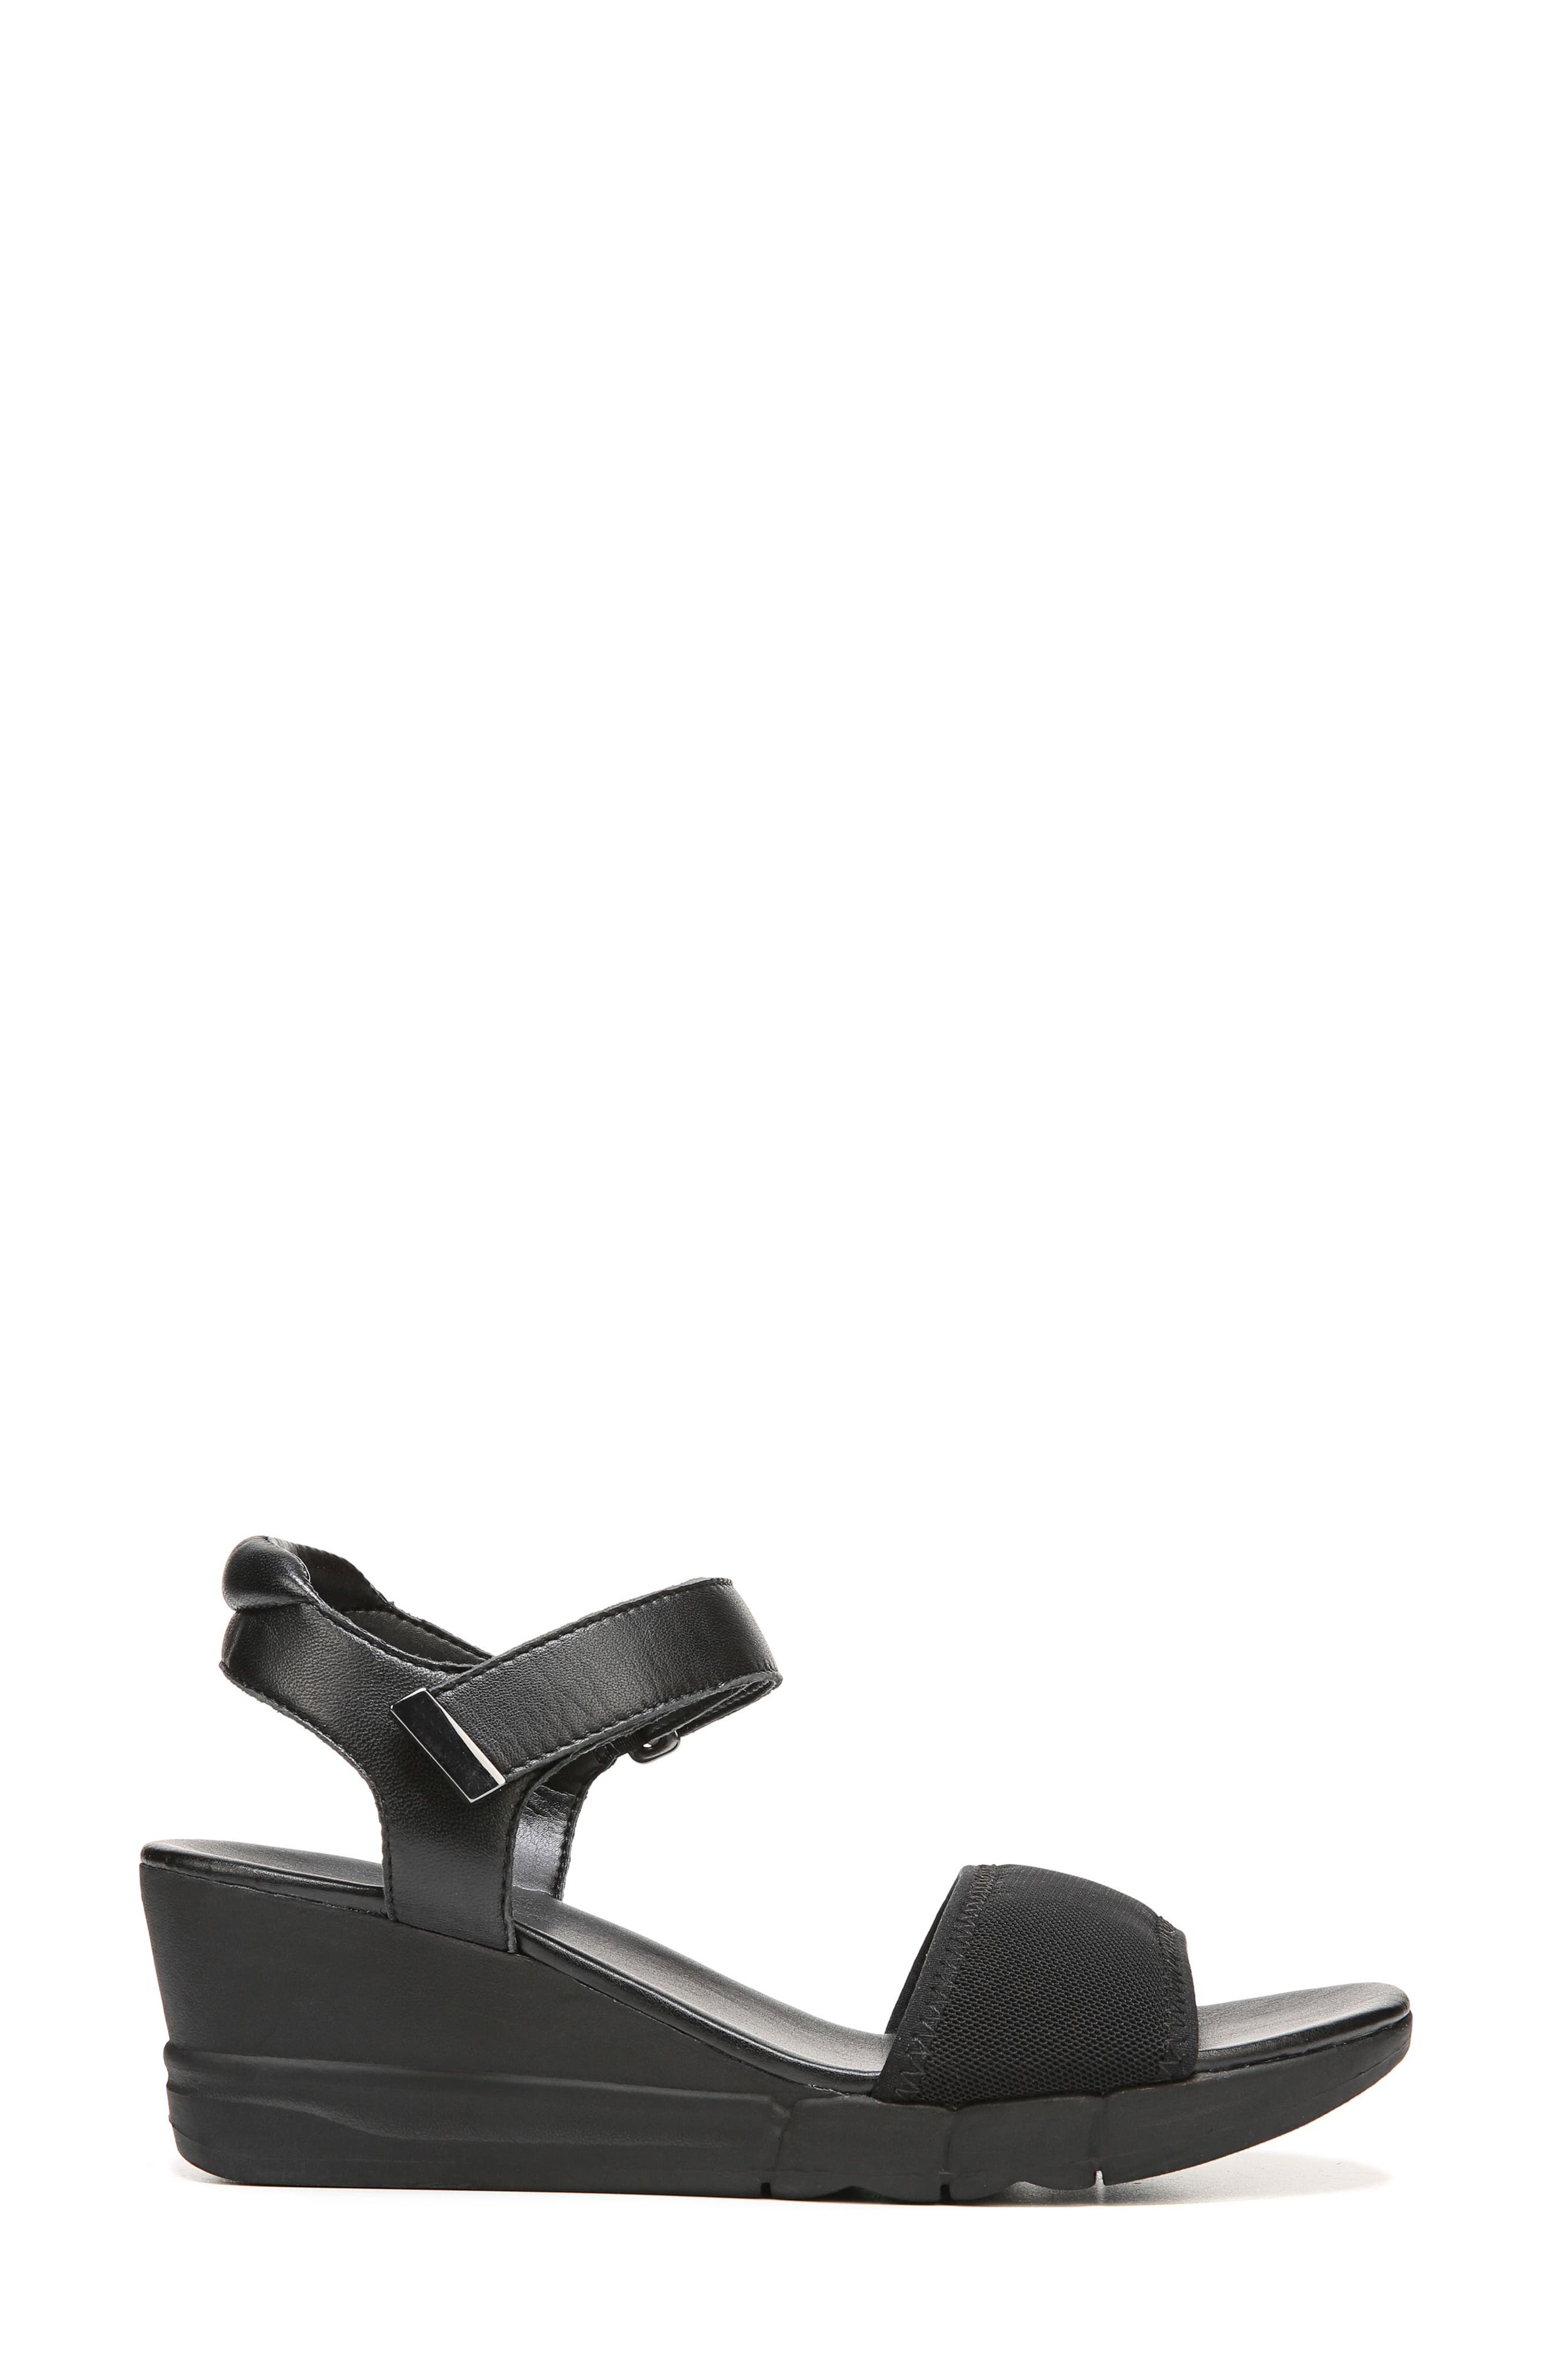 Irena Wedge Sandal,                             Alternate thumbnail 3, color,                             Black Leather